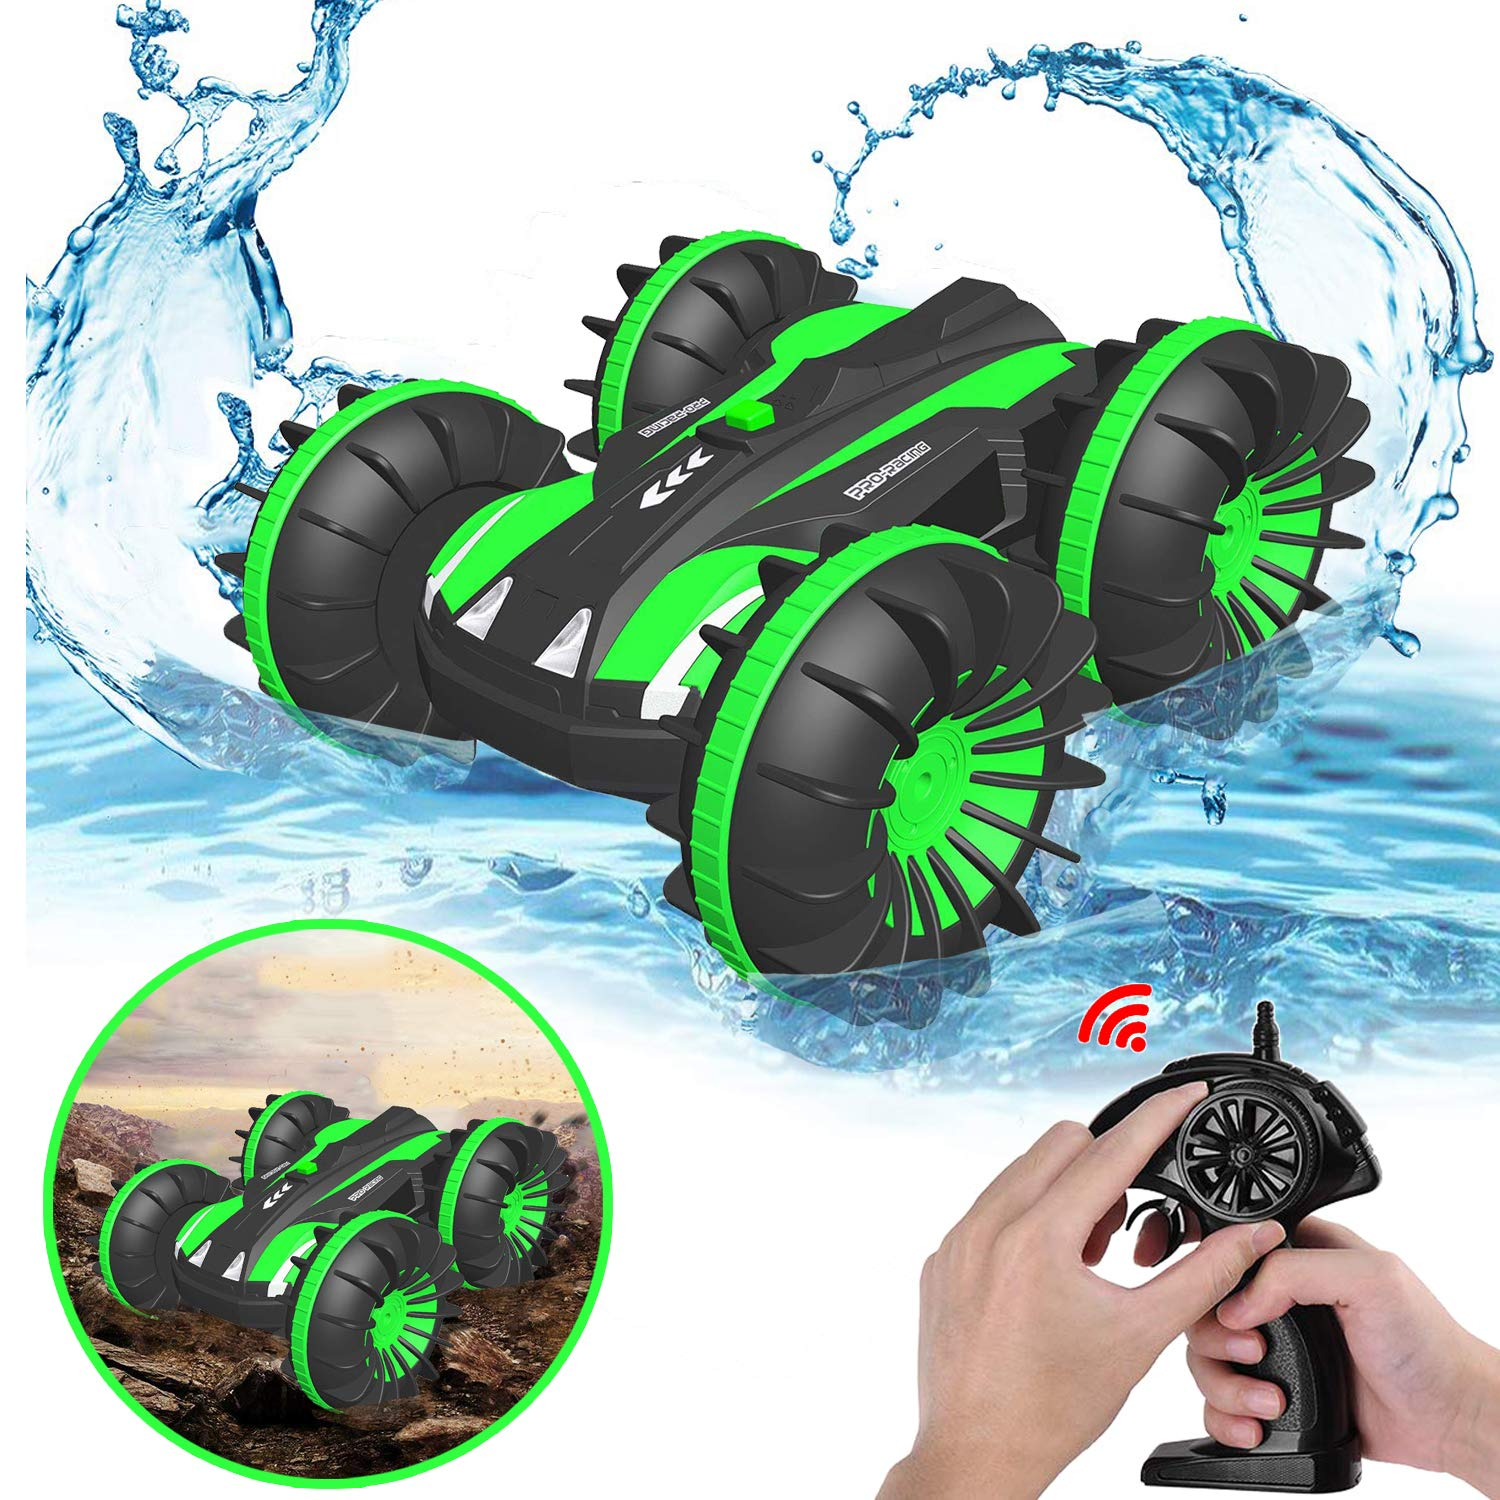 Pussan Gifts for 6-10 Year Old Boys Amphibious Remote Control Car for Kids 2.4 GHz RC Stunt Car for Boys Girls 4WD Off Road Monster Truck Gifts Remote Control Boat Summer Beach Toy Green